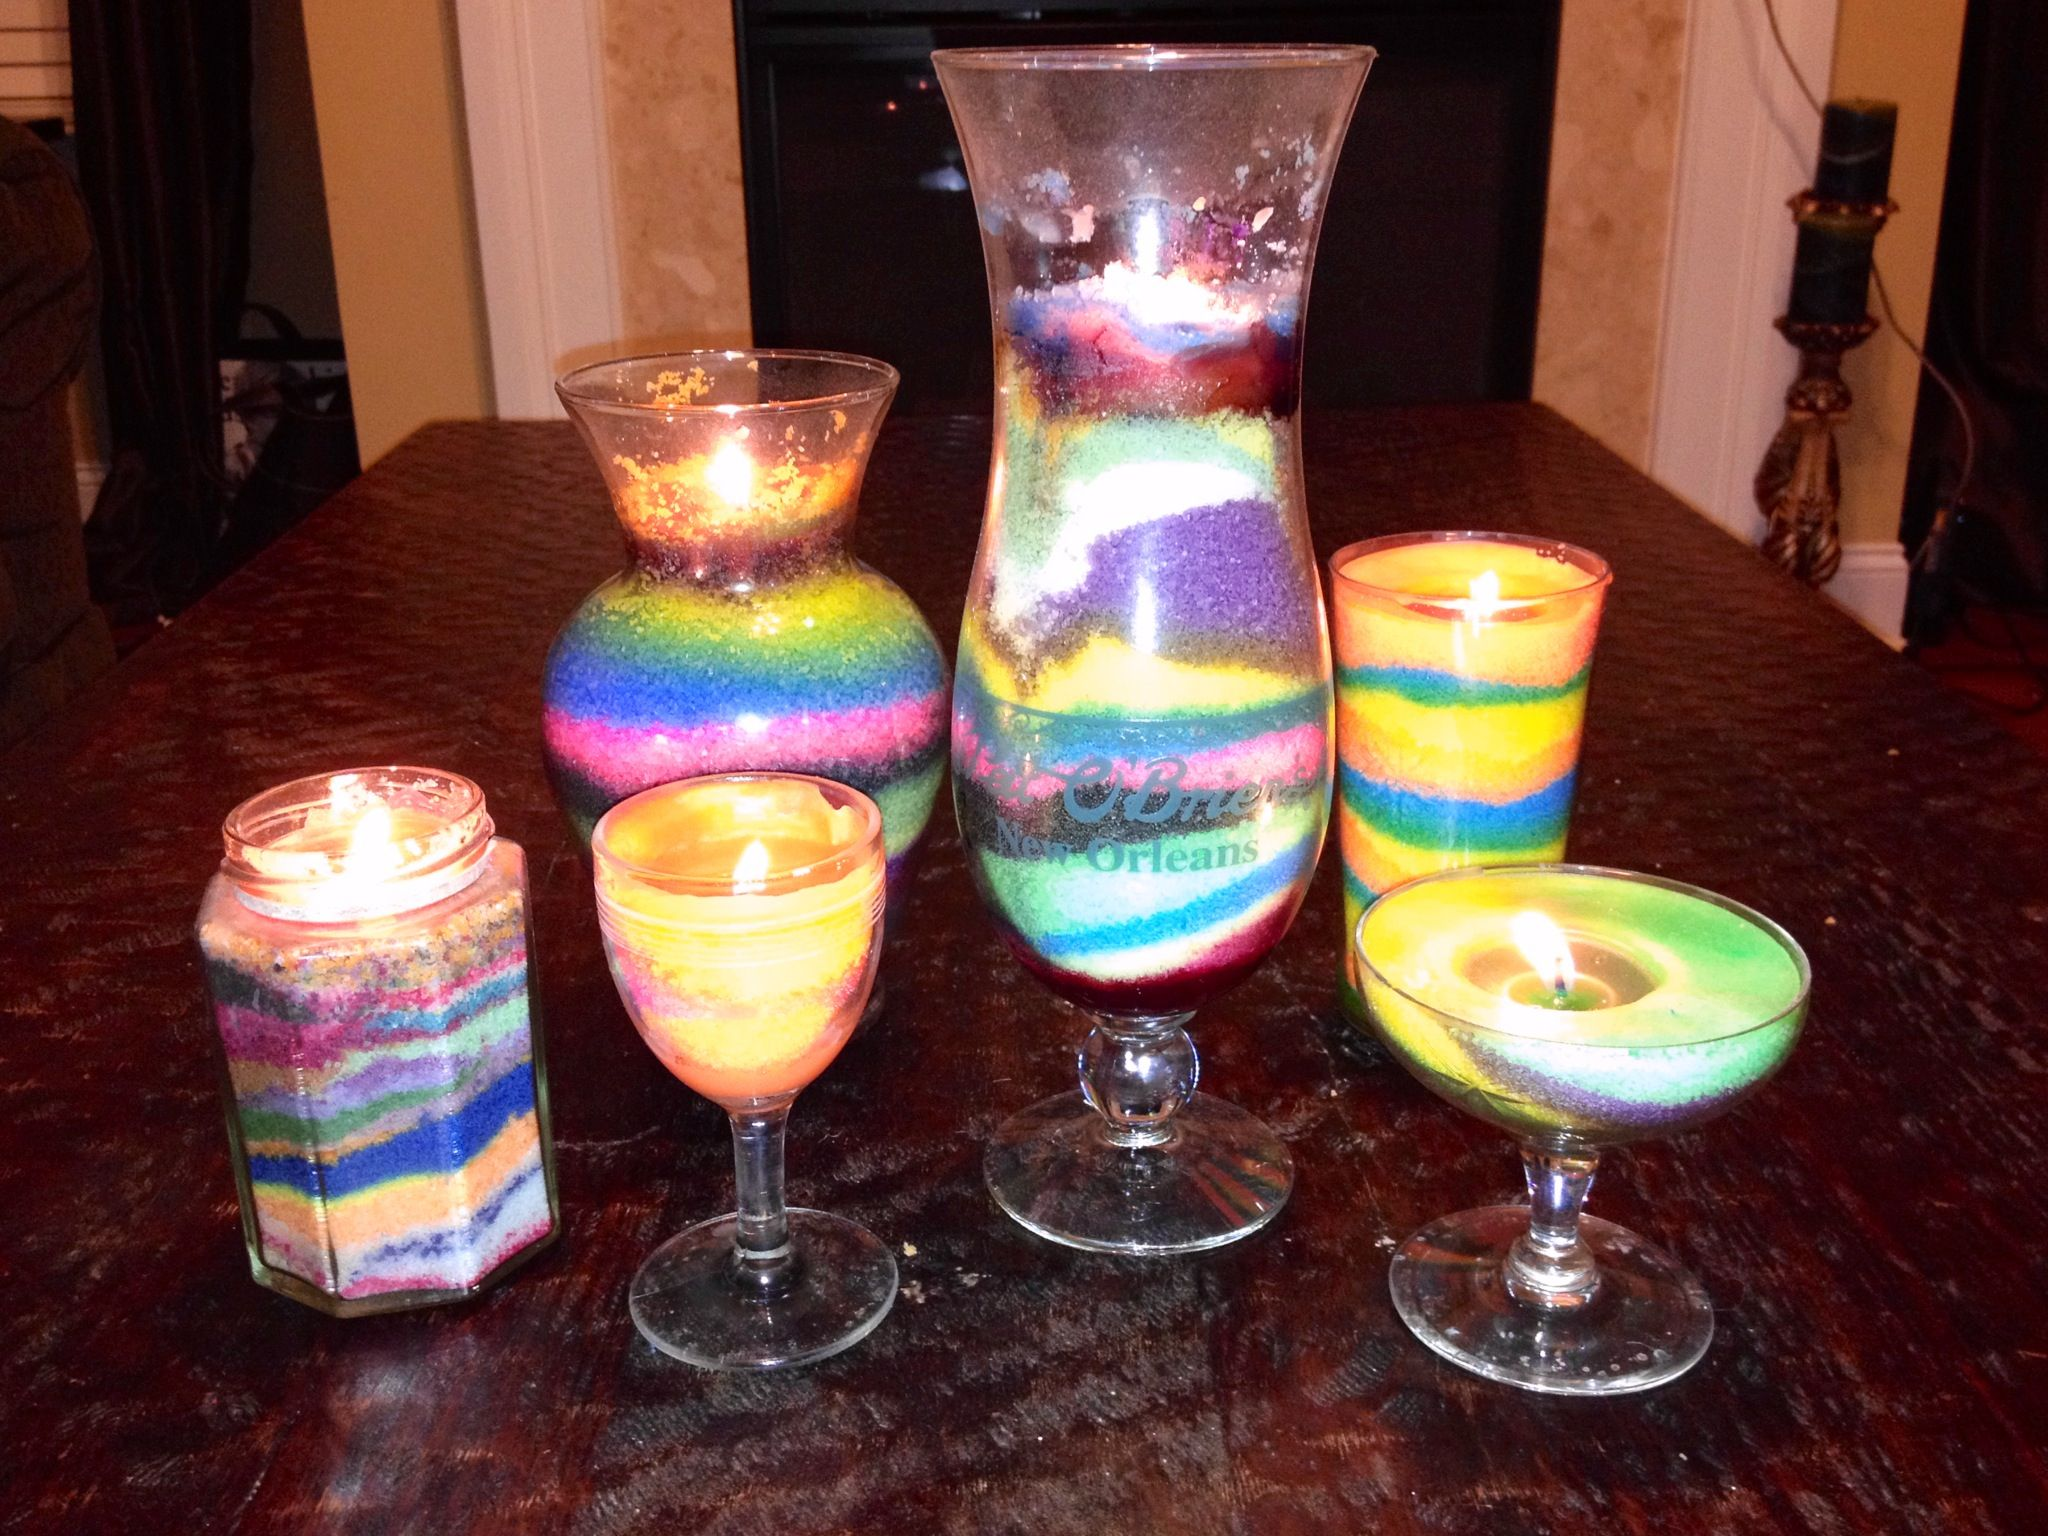 DIY- candles. You can use any clear glasses, even old flower vase. My favorites are the antique glasses that weren't doing anything but collecting dust, and a collectors glass I purchased on a vacation. Just pour colored wax beads and place a wax coated wick in middle. You can also add your favorite fragrance as you add wax beads to enjoy as you burn the candles!